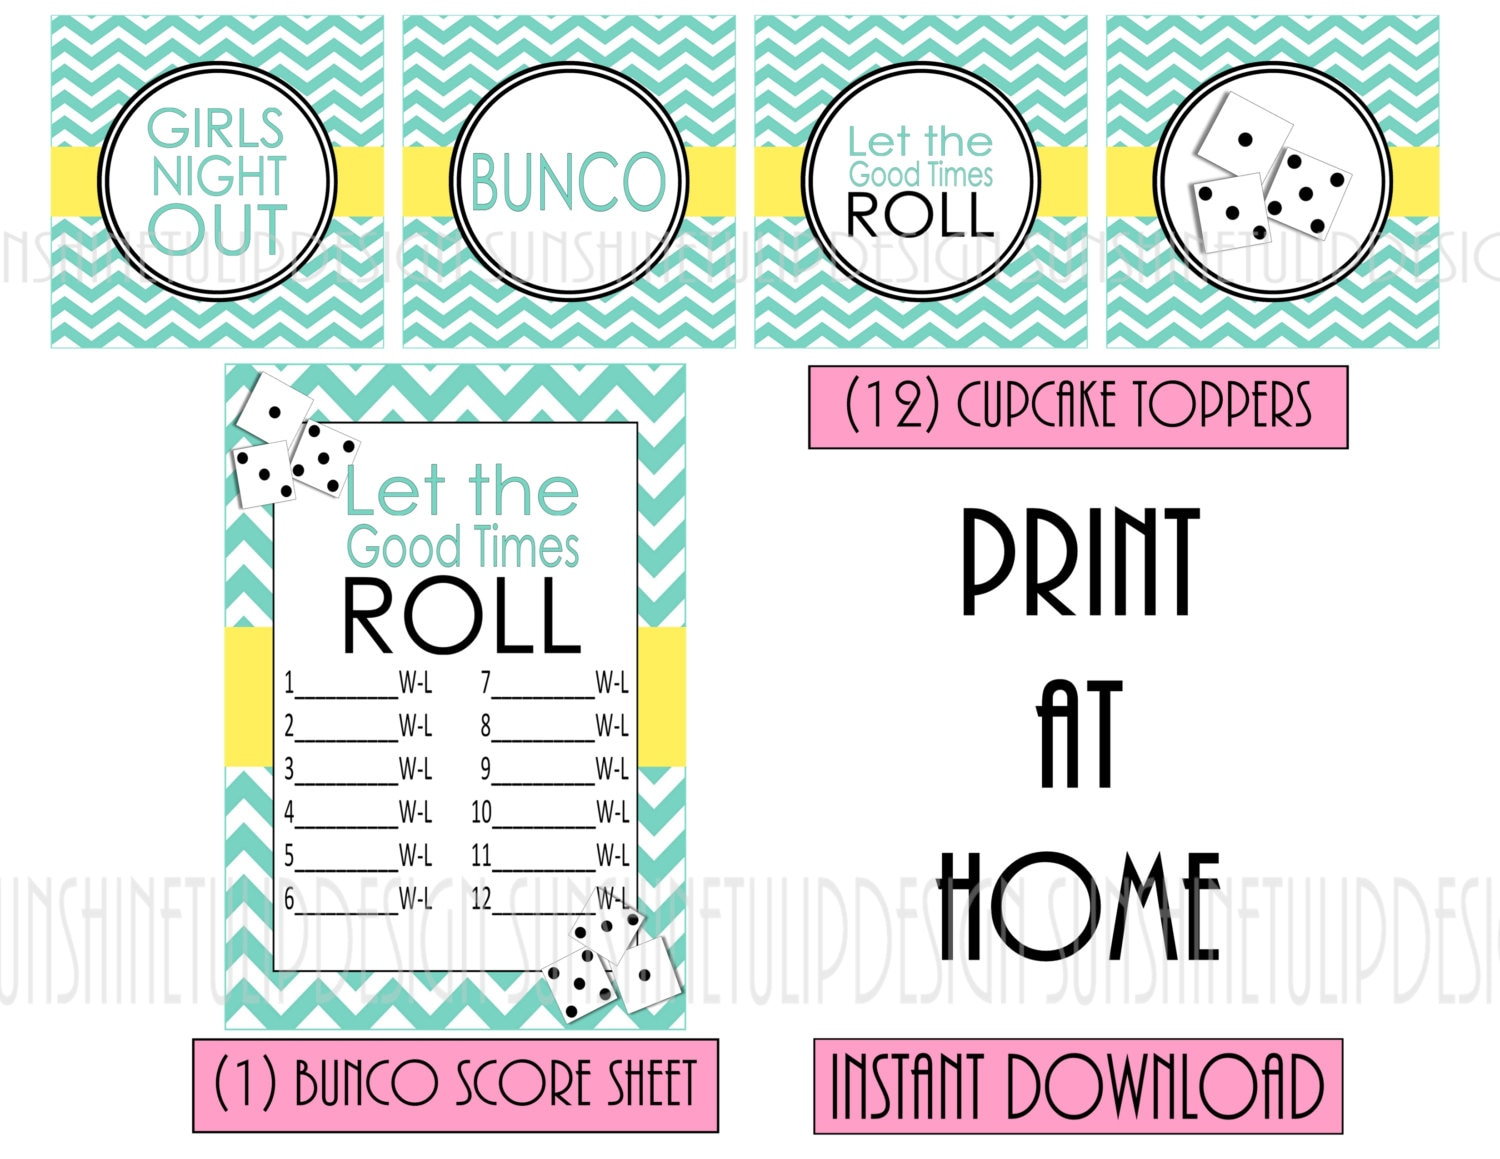 This is an image of Dashing Free Printable Bunco Score Sheets